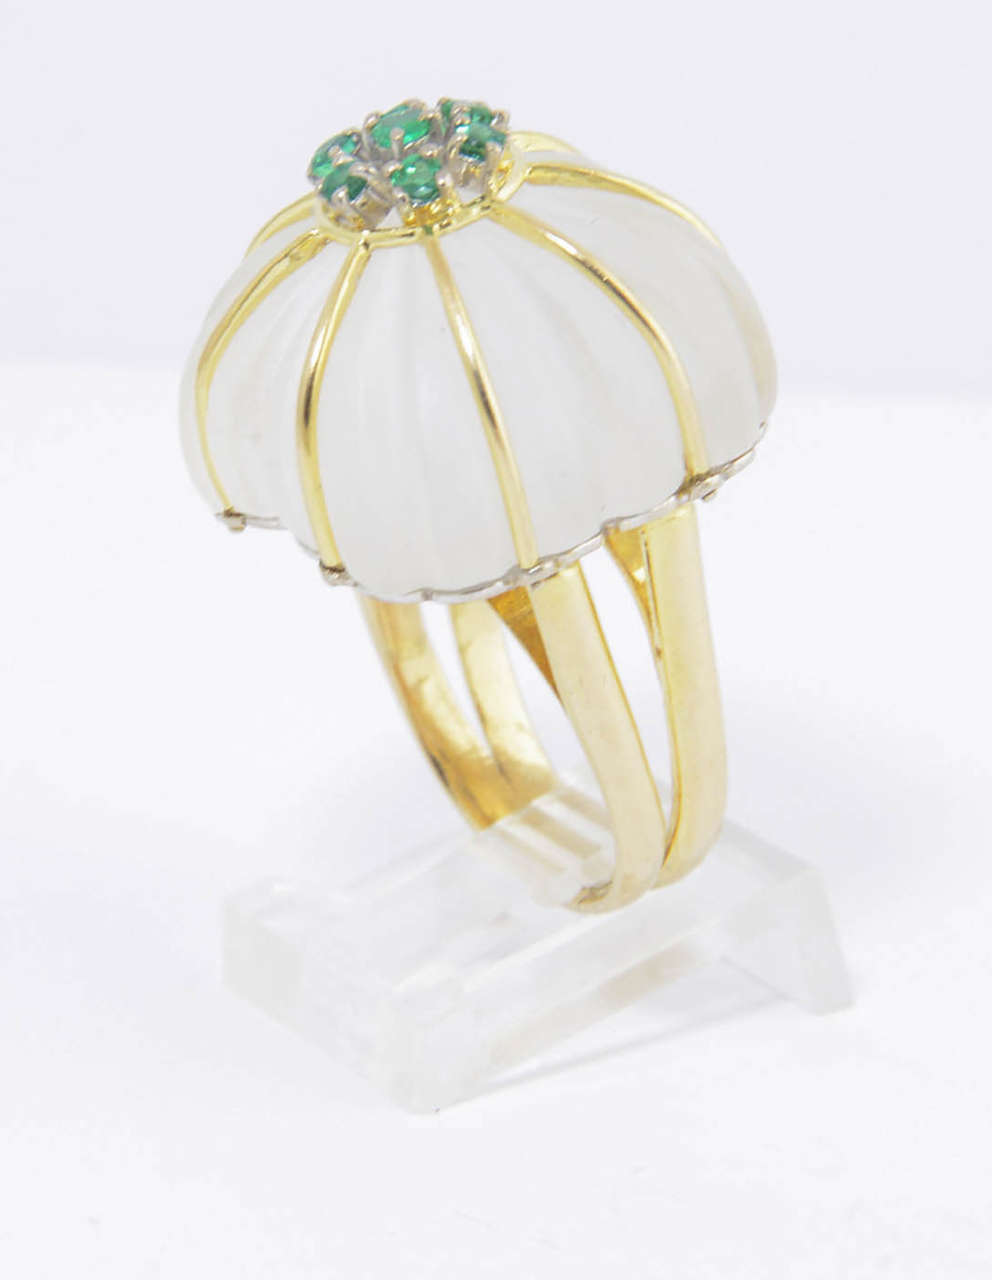 1970s Carved Rock Crystal Emerald Gold Ring In Excellent Condition For Sale In Miami Beach, FL